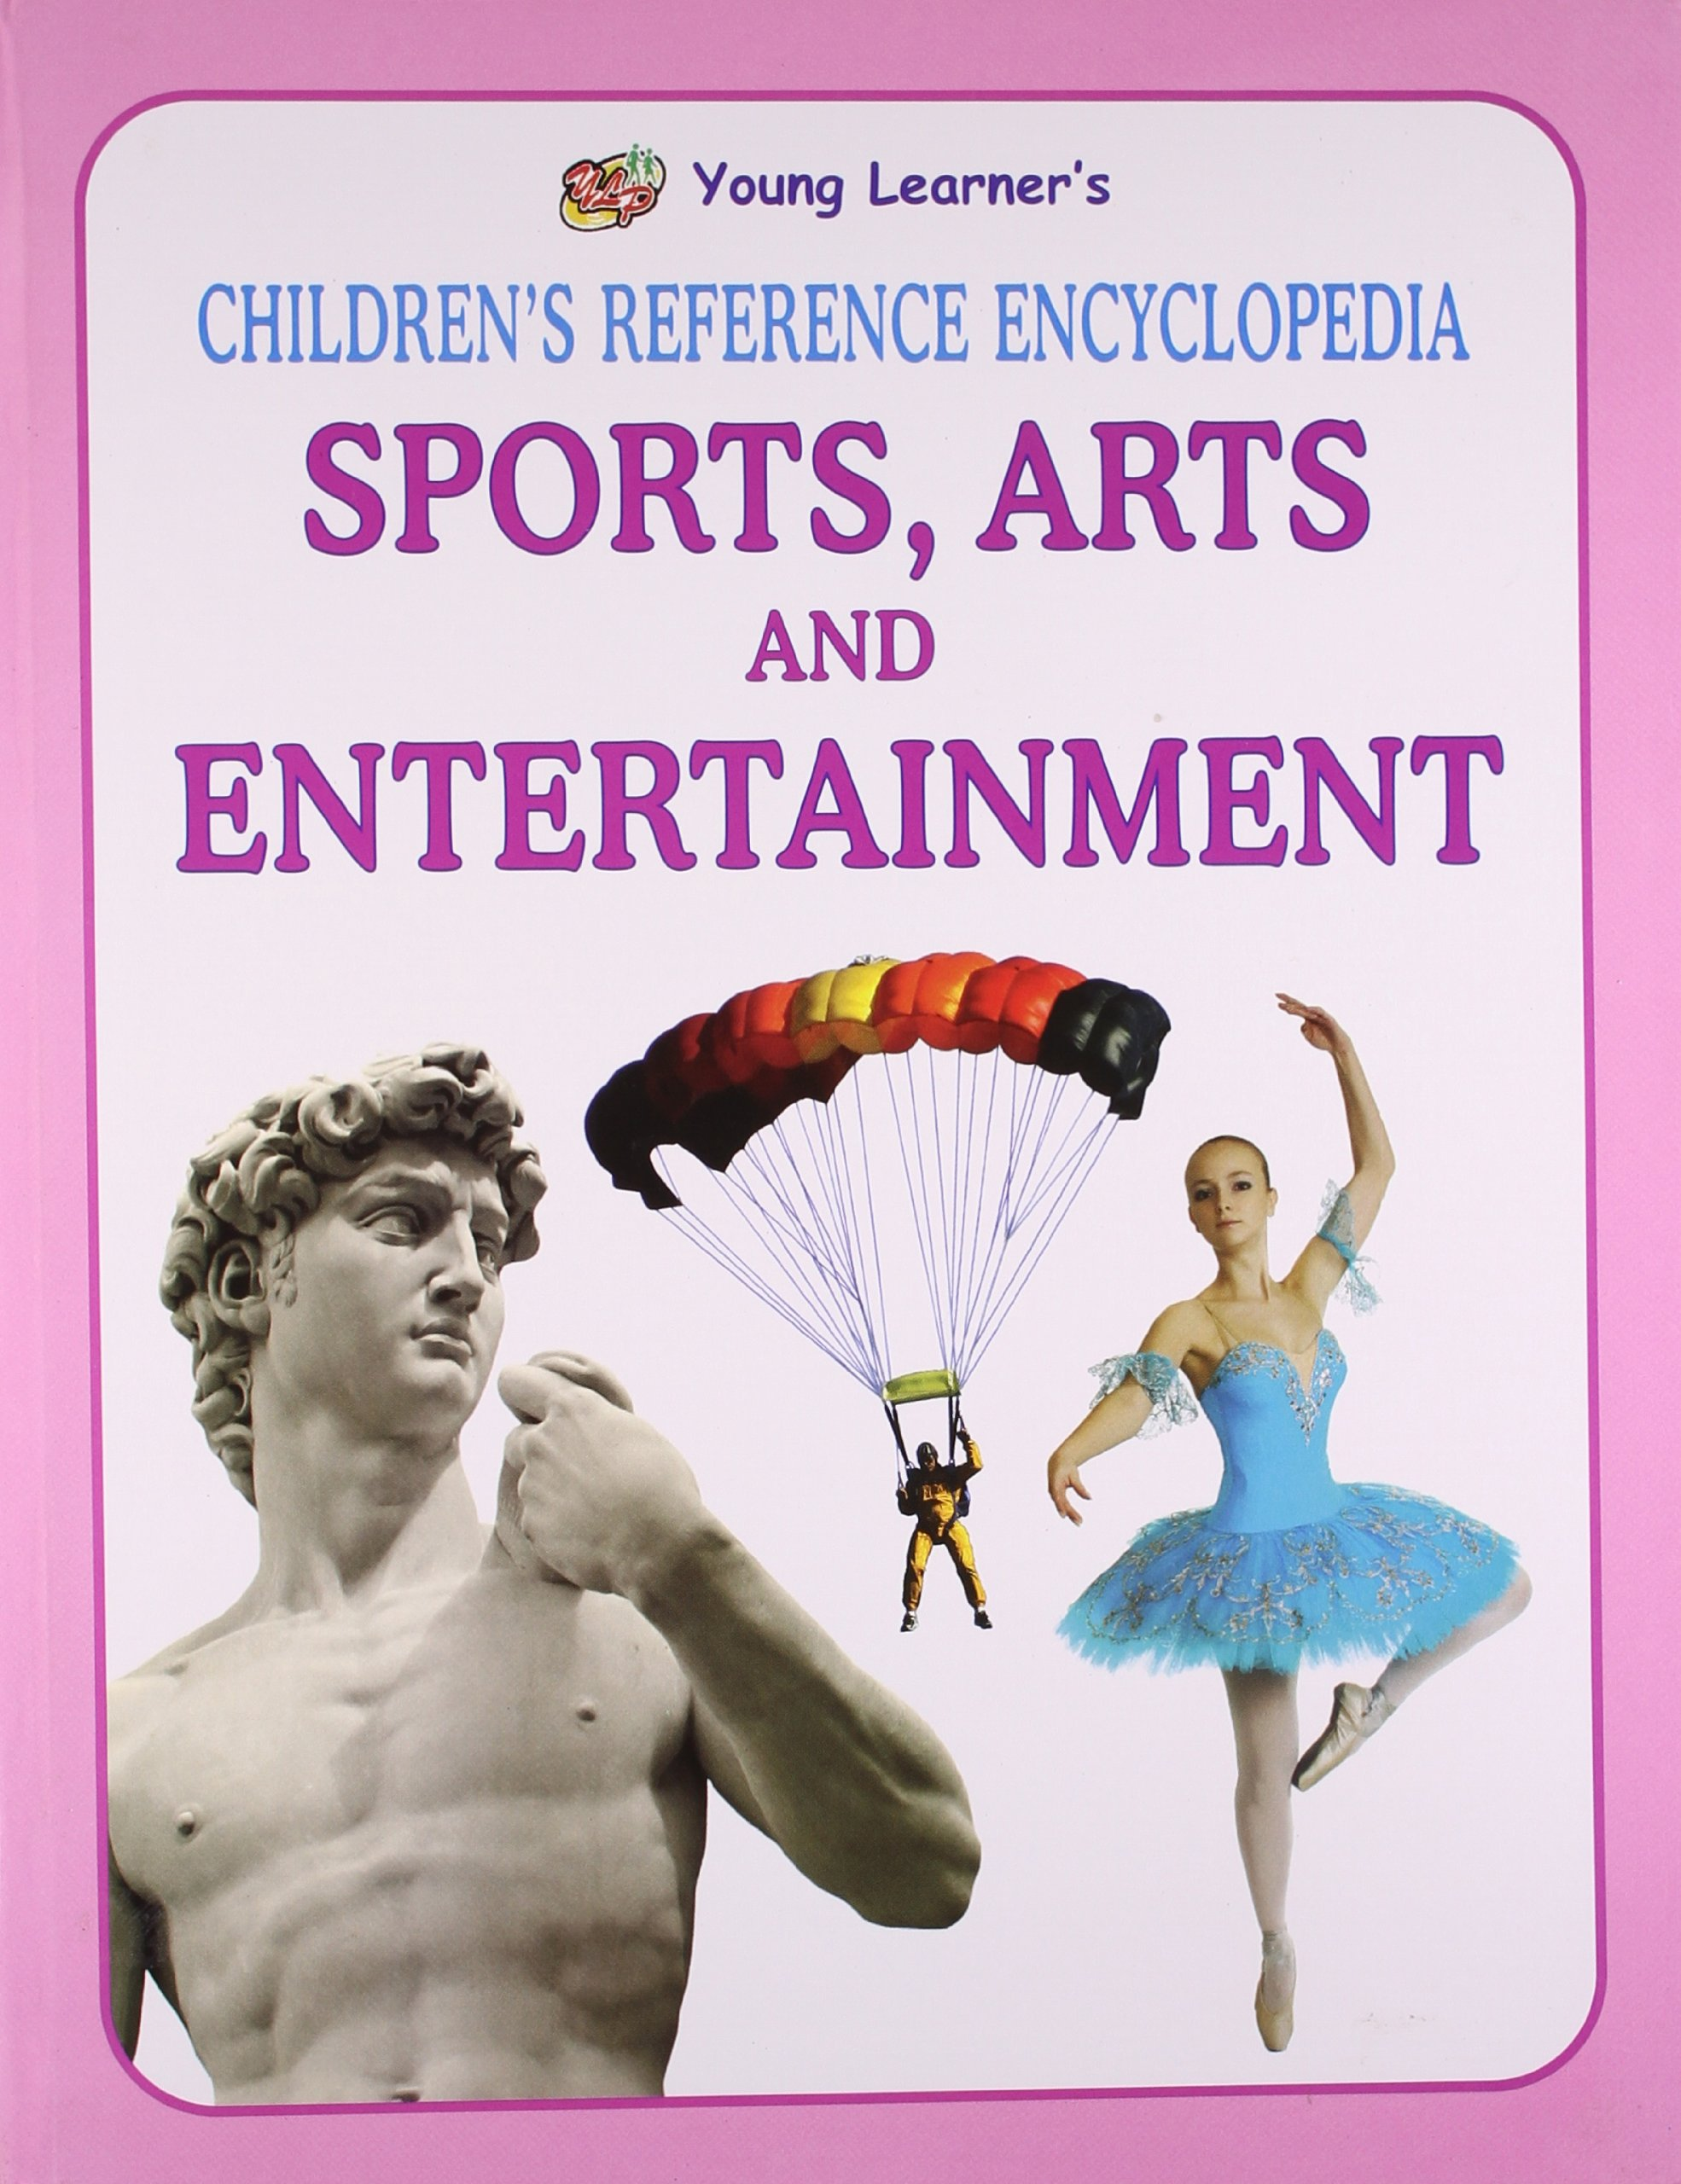 Sports, Arts and Entertainment